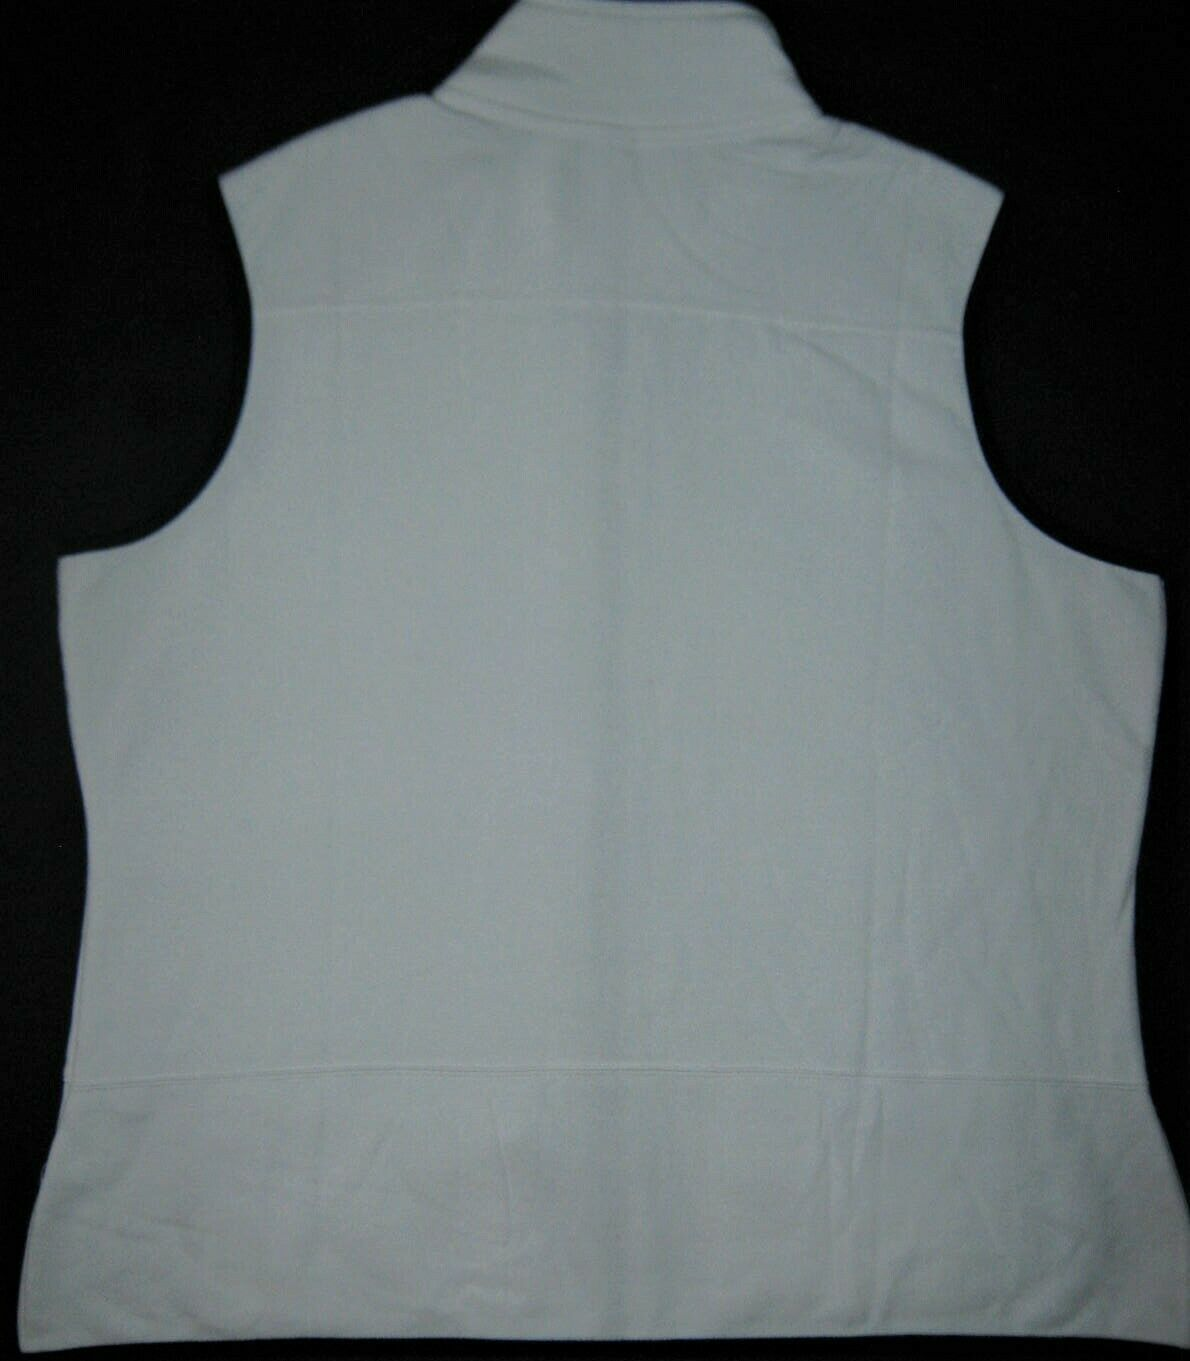 Womens GEAR for Sports Zip Front Pockets Sleeveless Vest White New XXL